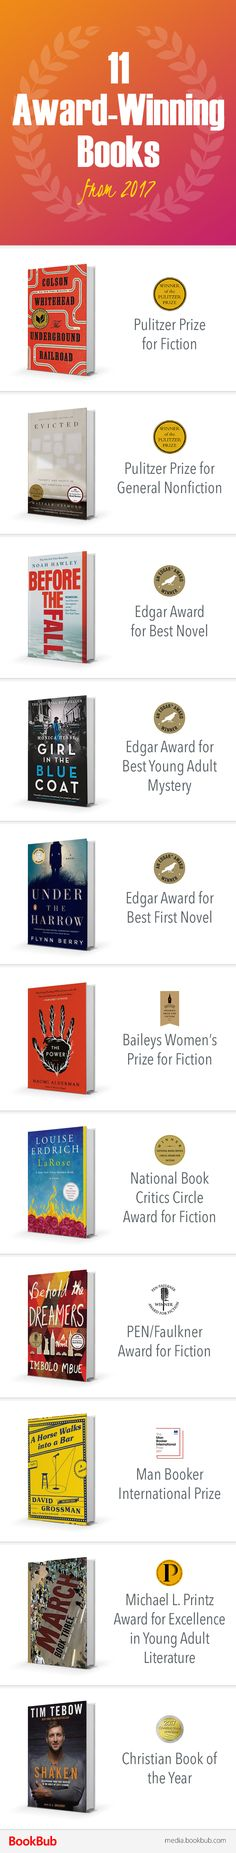 Don't miss these award winning books. Including some of the best books of 2017 that are worth reading.